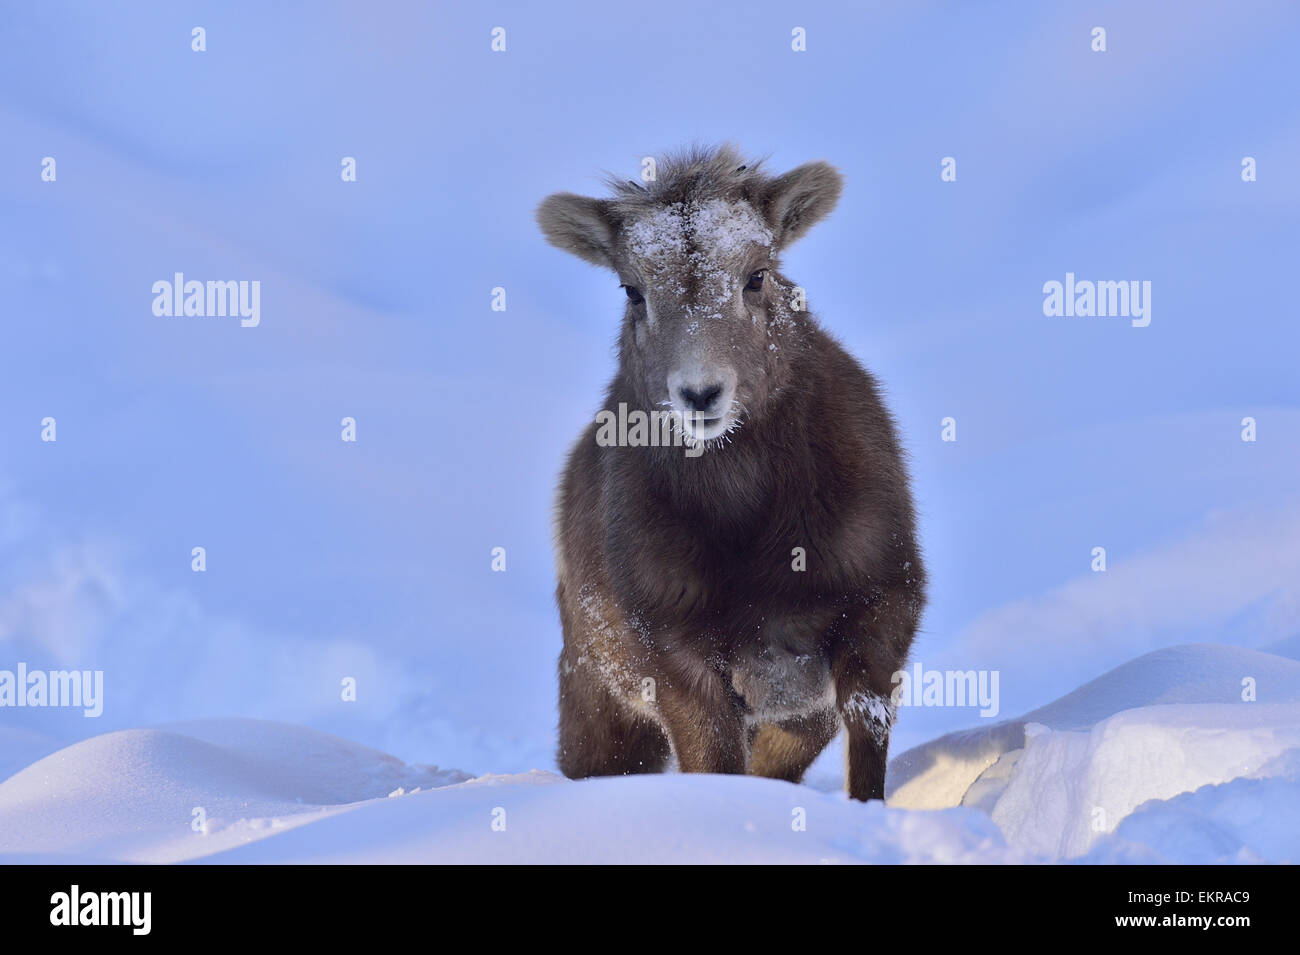 A baby bighorn sheep walking through the deep winter snow in evening light - Stock Image